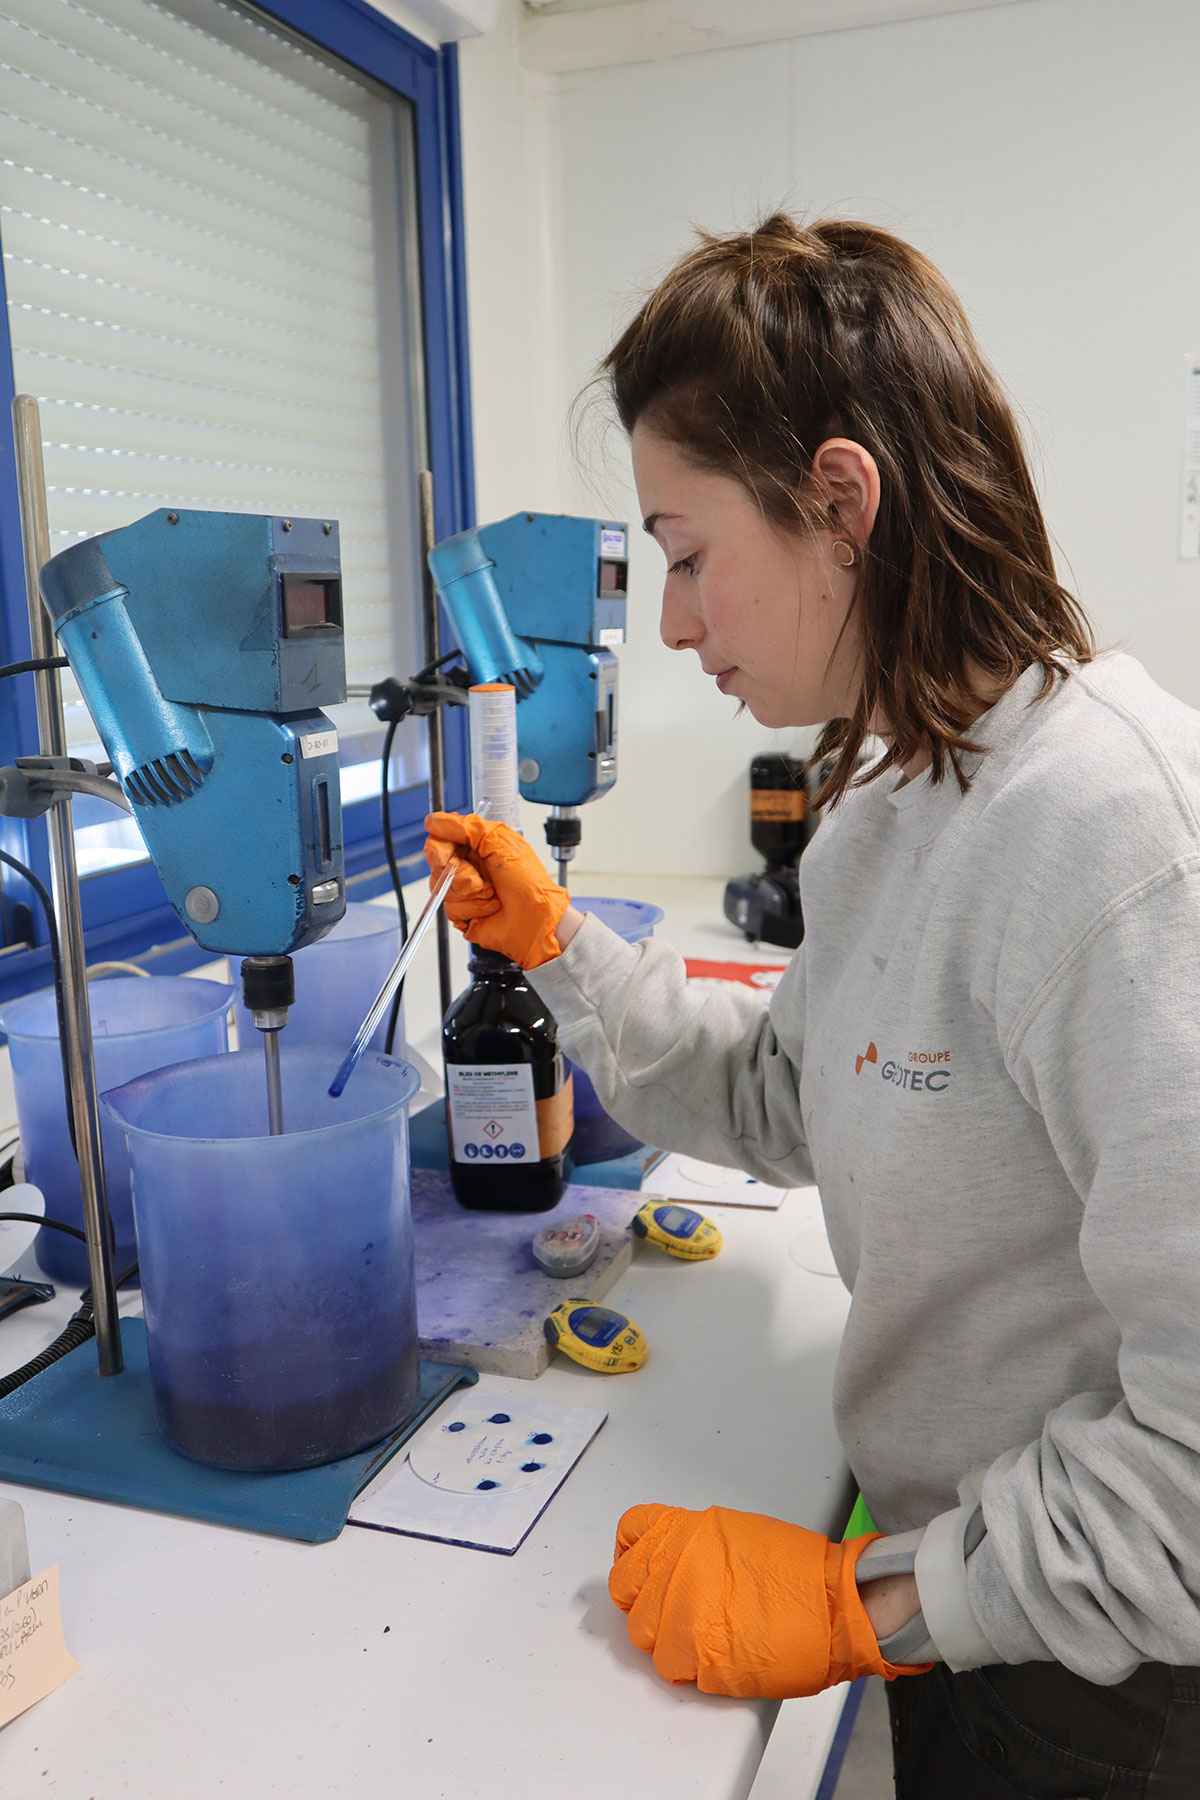 Technicienne laboratoire